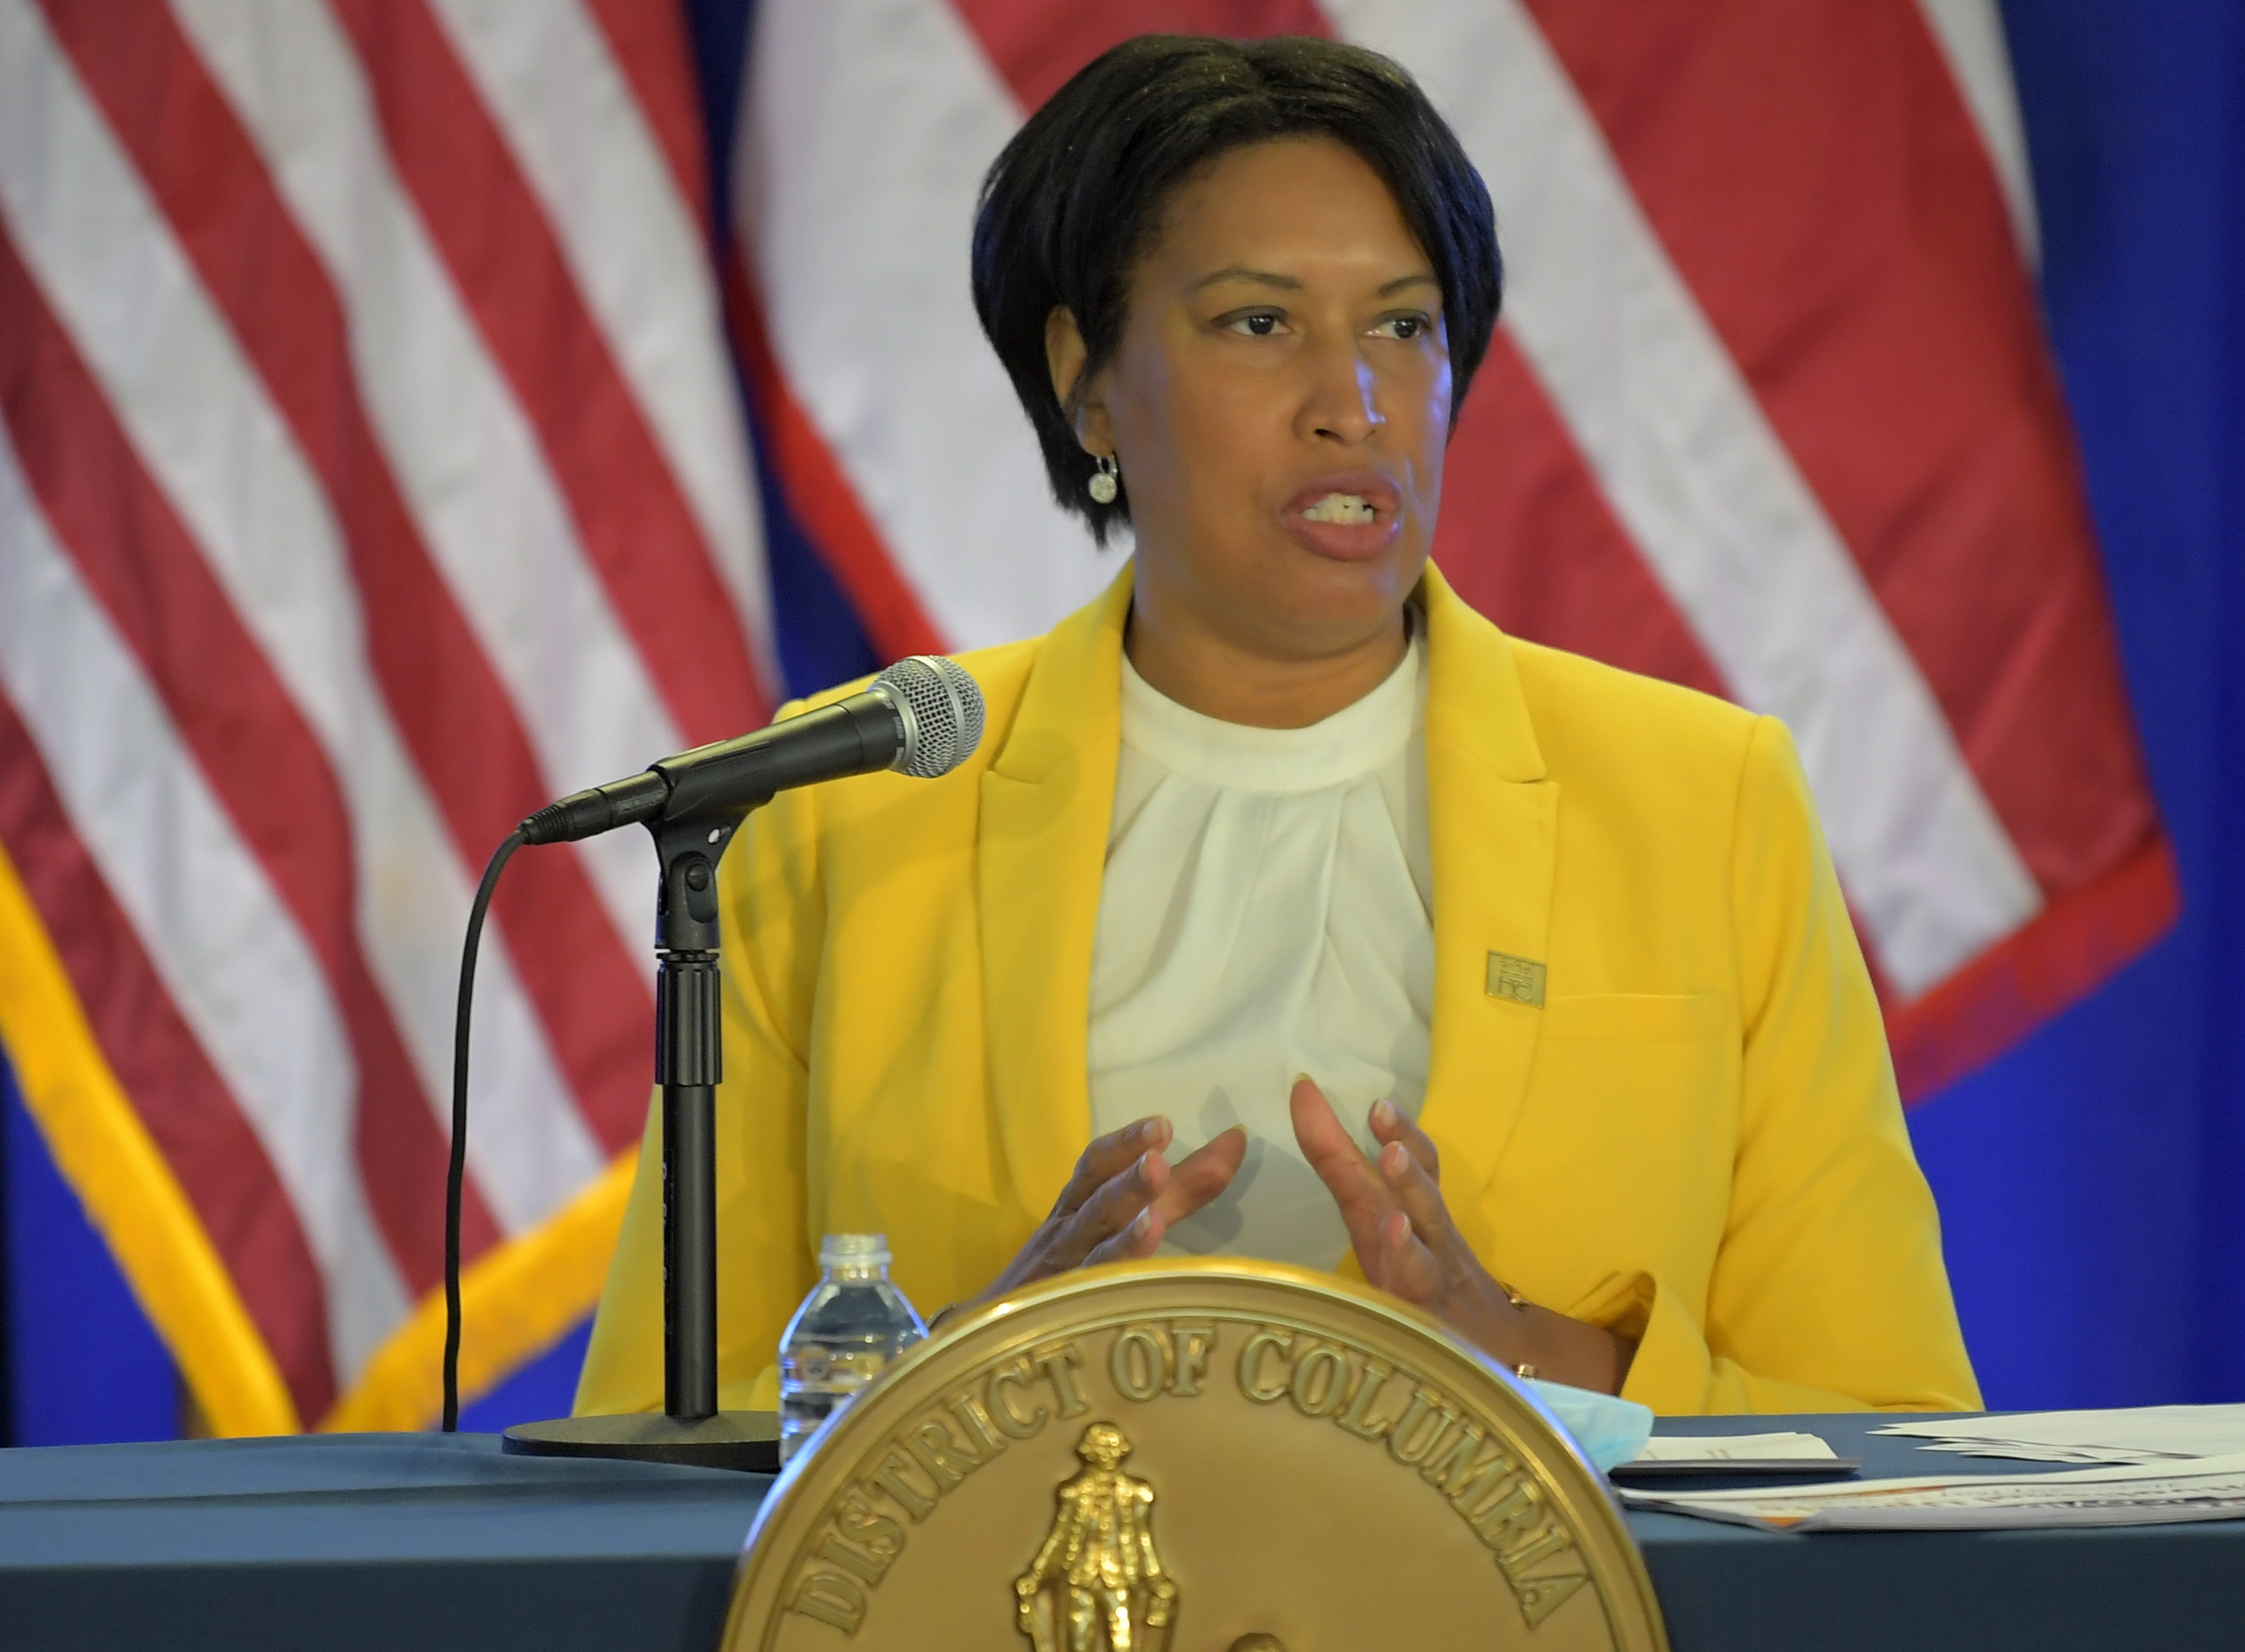 WASHINGTON, DC - MAY 13: DC Mayor Muriel Bowser held a press conference to give an update on how the city is adjusting to the coronavirus pandemic in Washington, DC on May 13, 2020. (Photo by John McDonnell/The Washington Post)